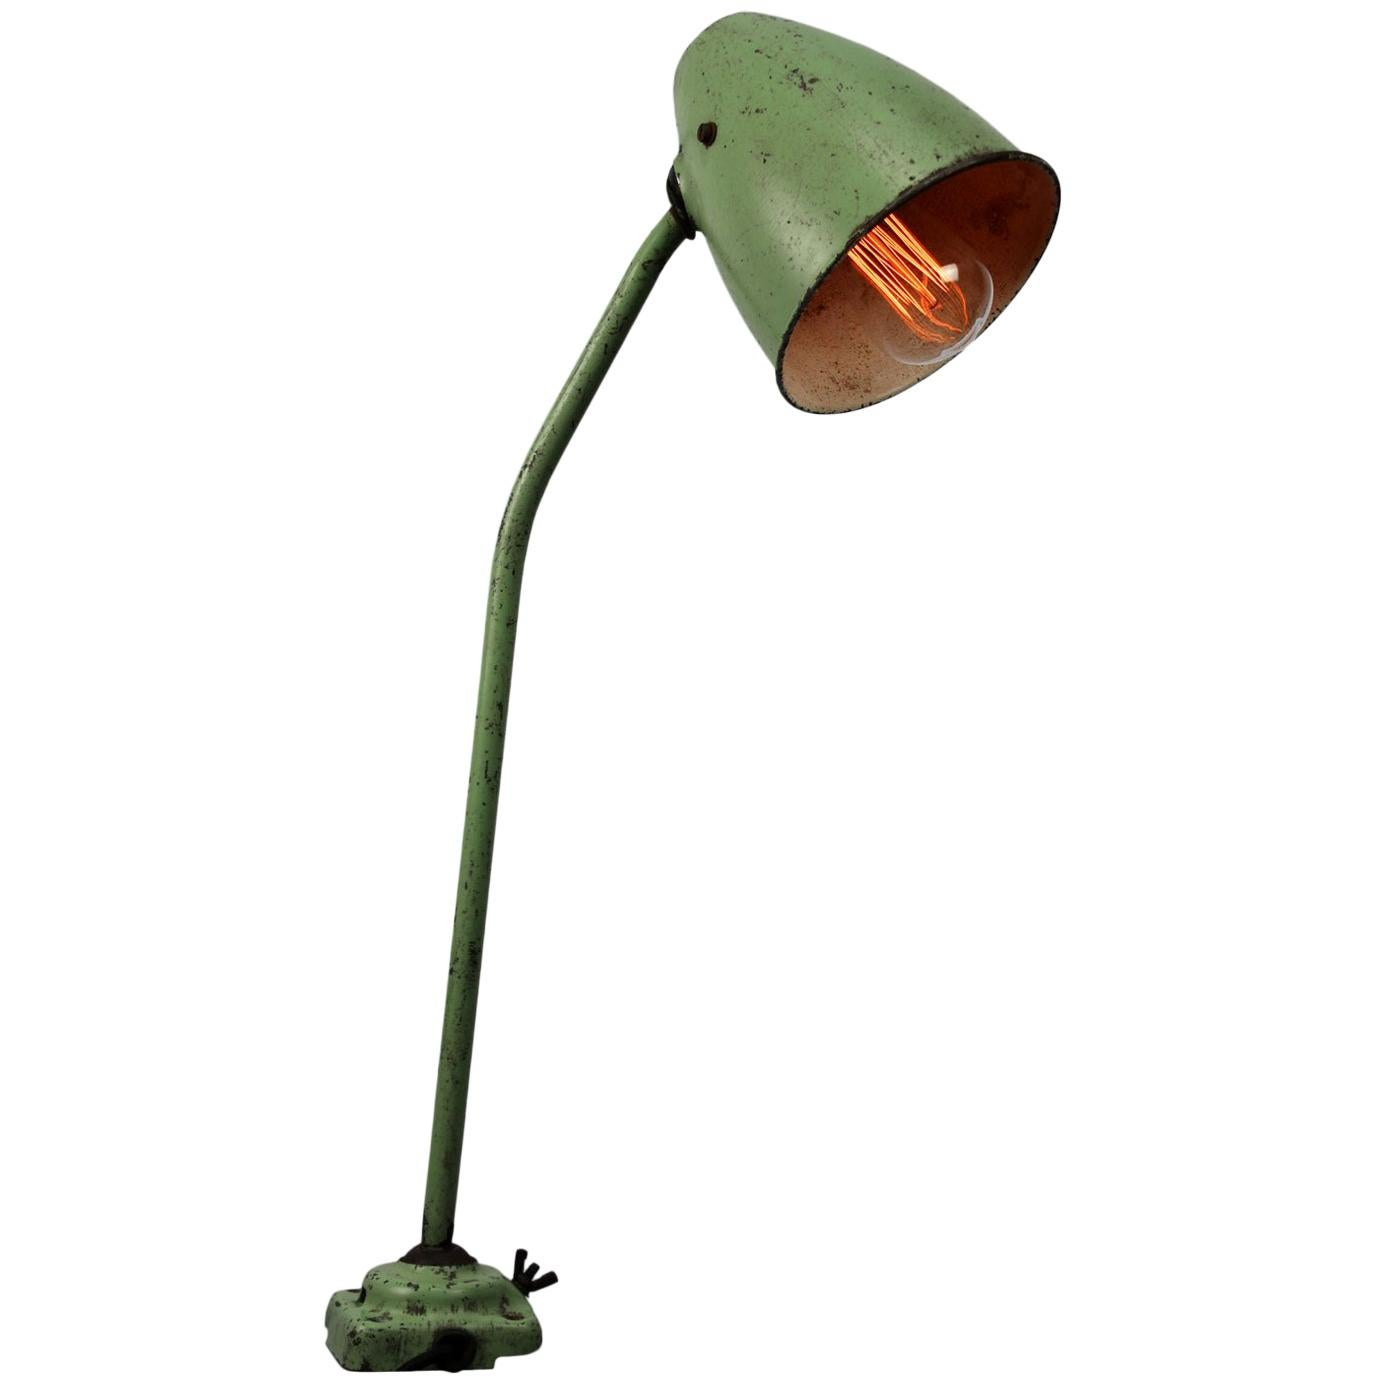 Green Metal Vintage Industrial Work Table Desk Lights (2x)